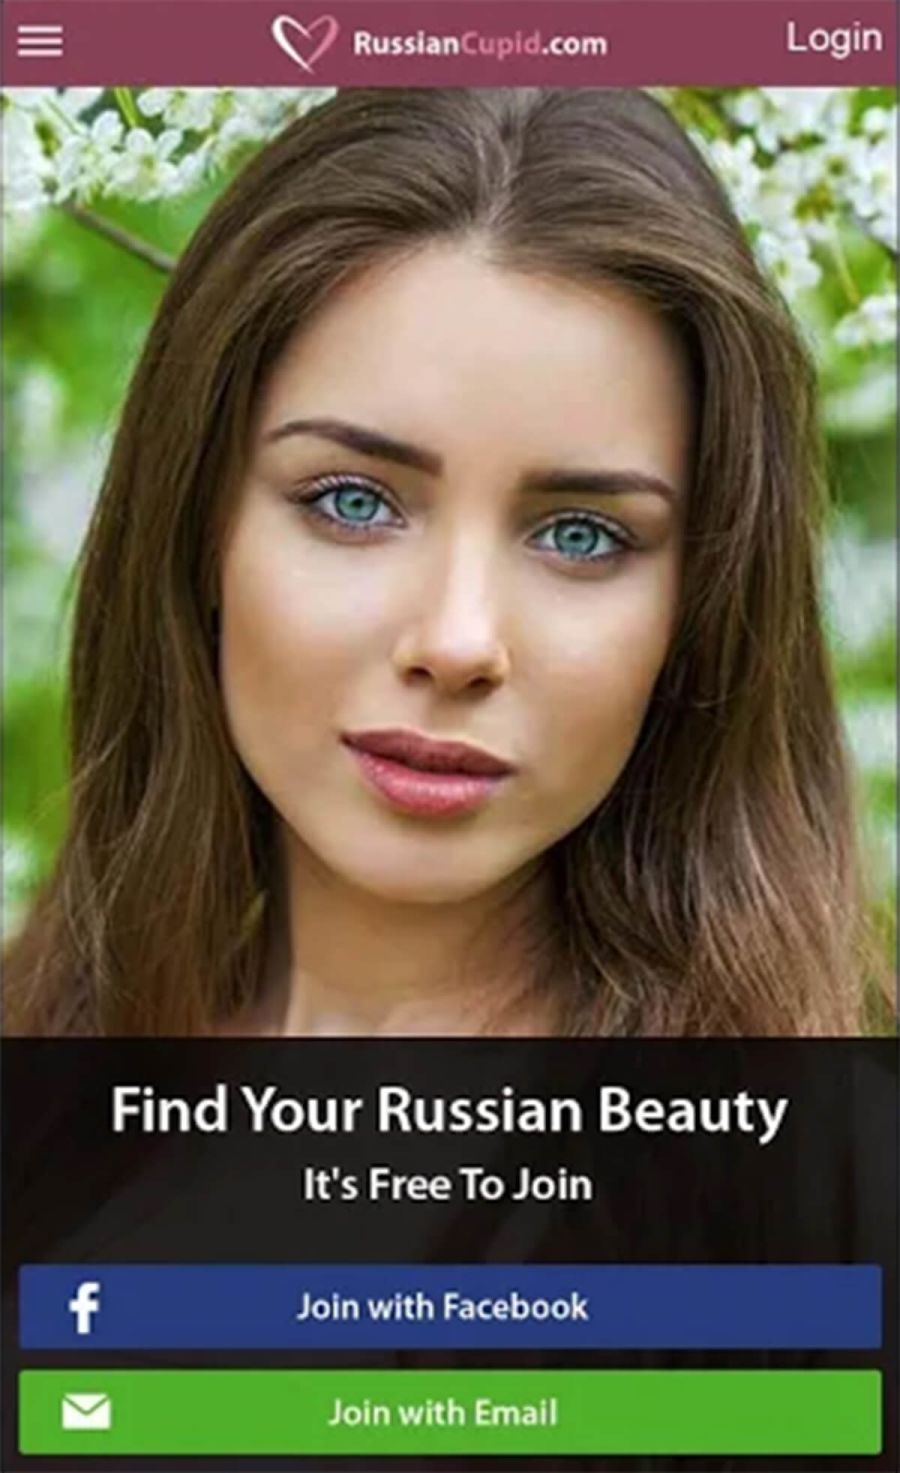 RussianCupid App